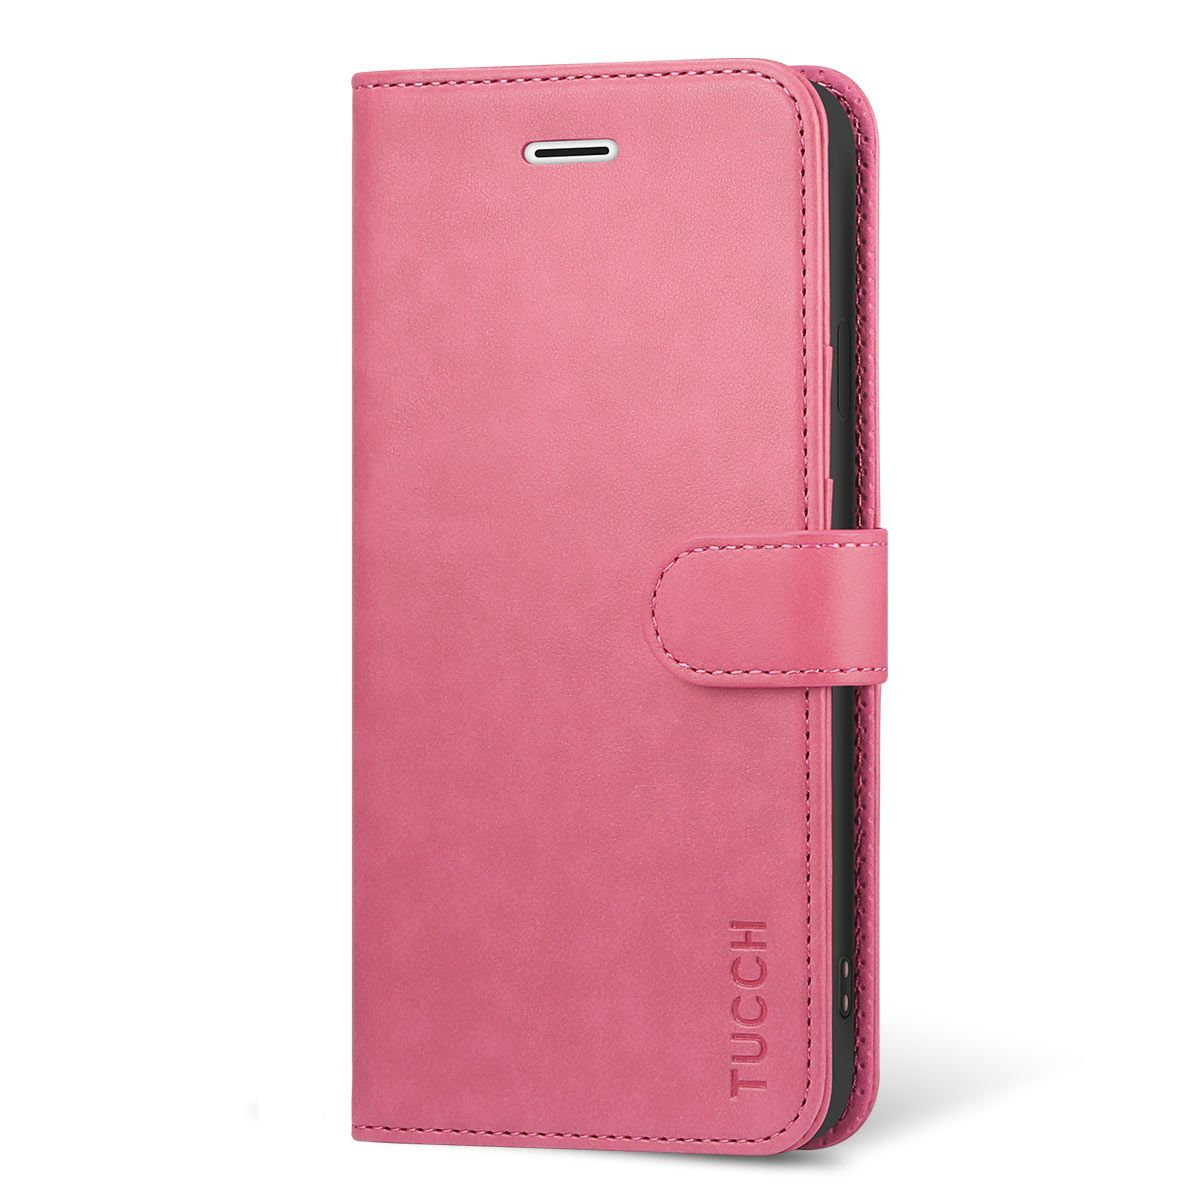 the latest b6208 1243b TUCCH iPhone 6s/6 Case, Stand Holder and Magnetic Closure, Flip Folio  Wallet Case